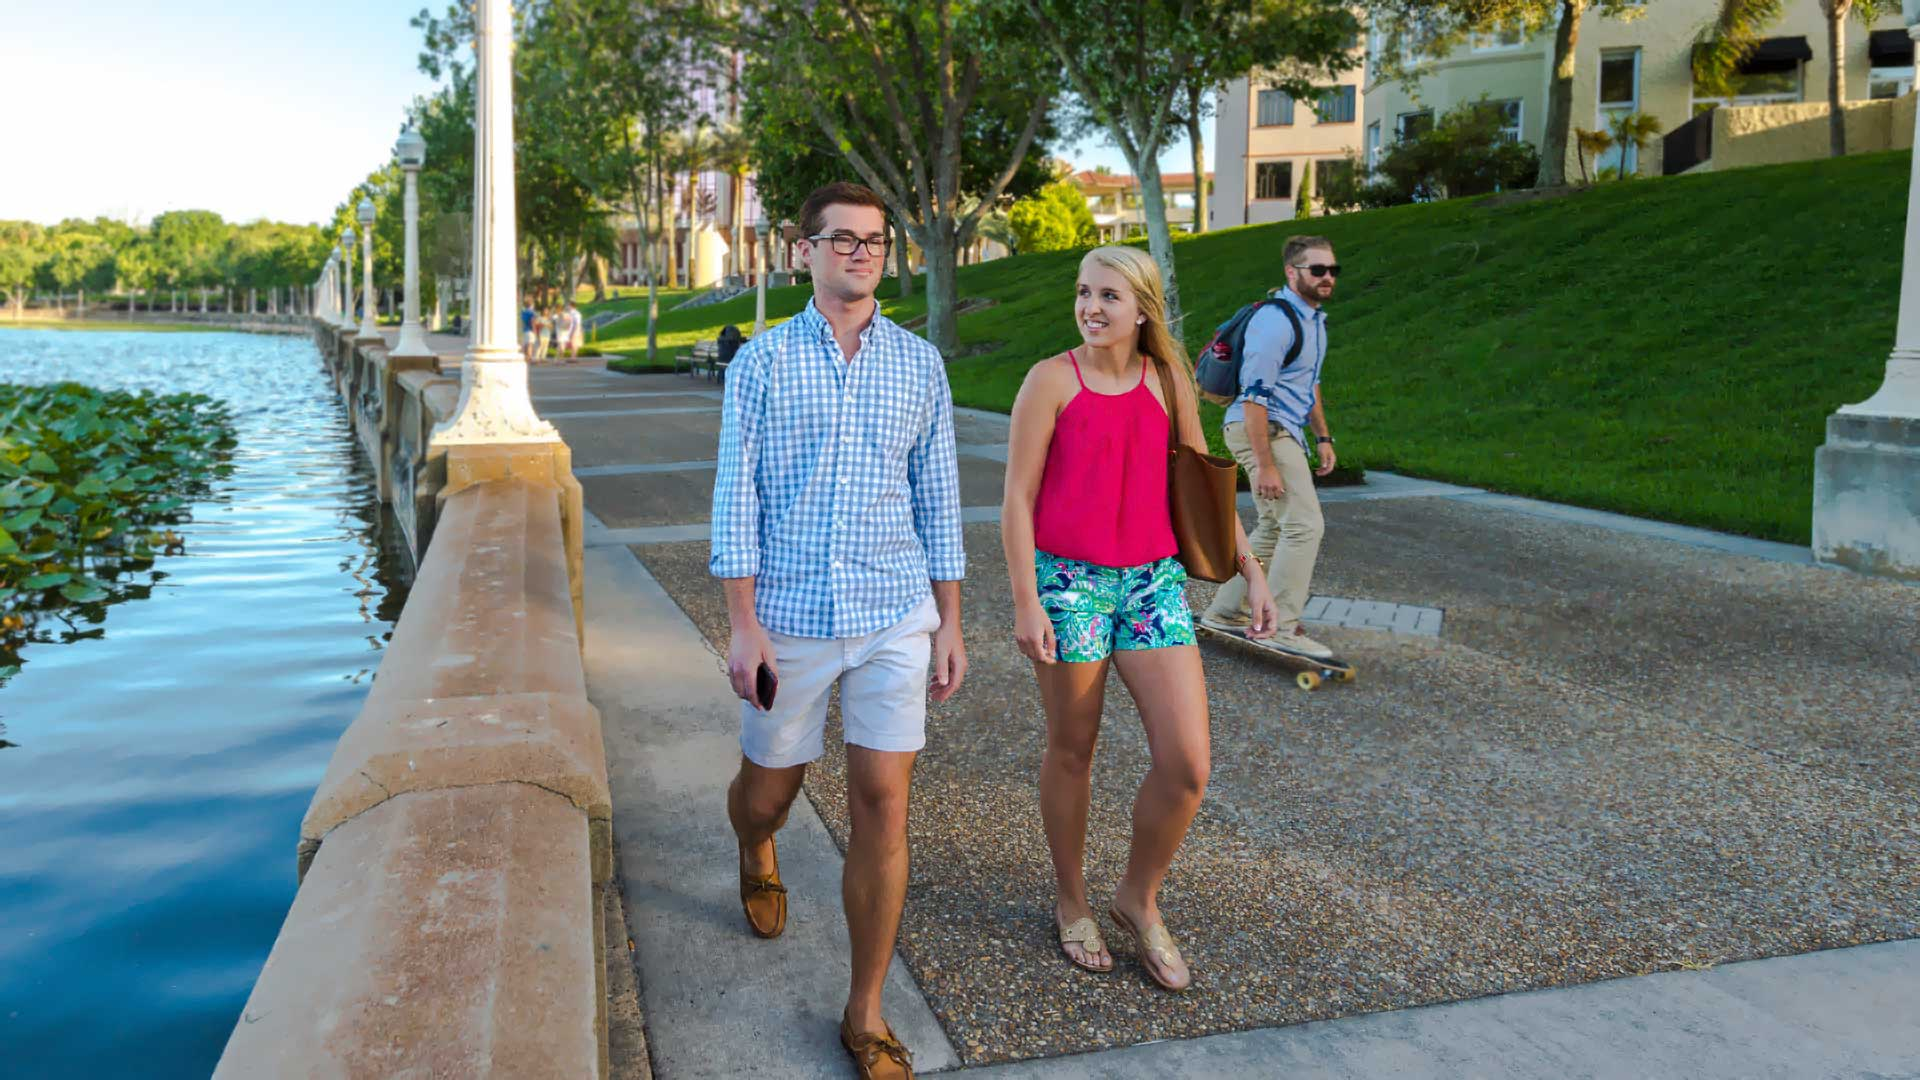 students enjoying a walk around lake mirror in lakeland, florida